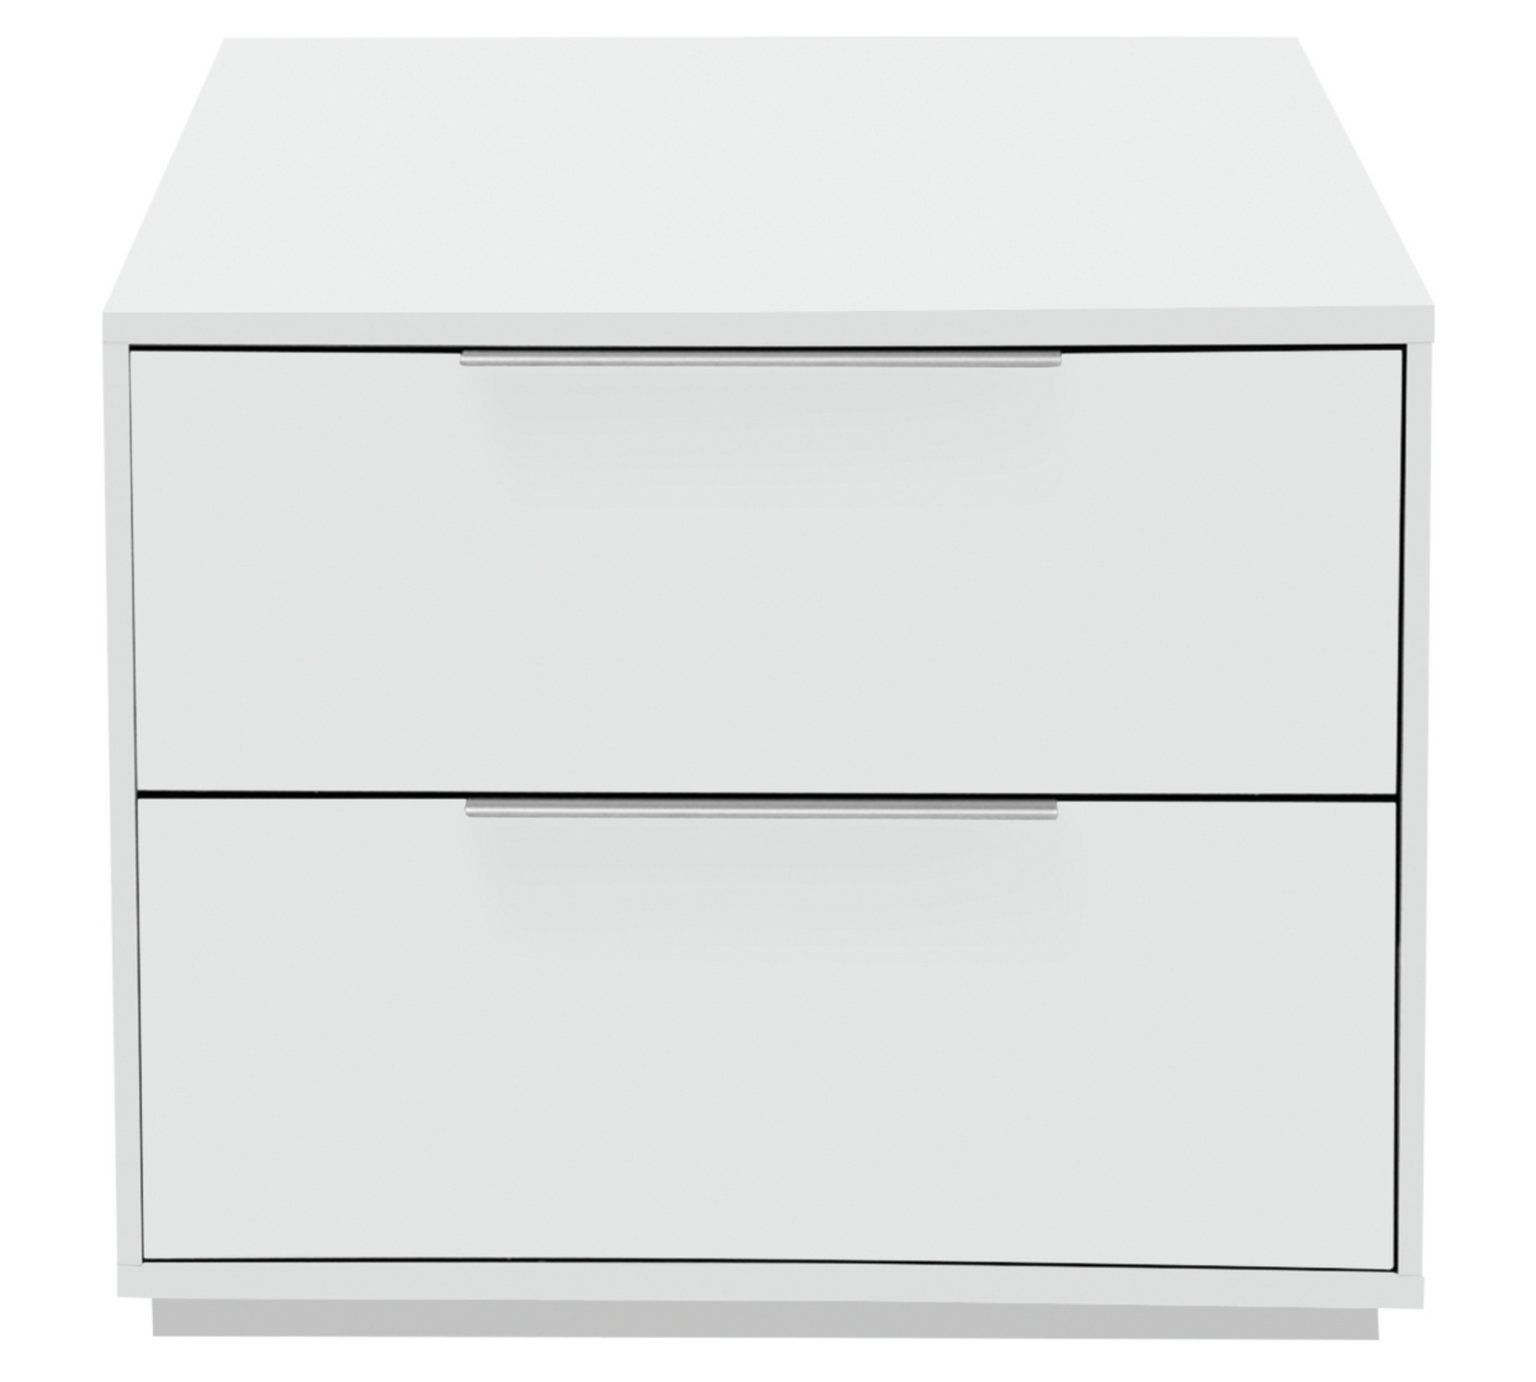 Buy Hygena Bergen Drawer Bedside Chest White At Argoscouk - Argos modular bedroom furniture